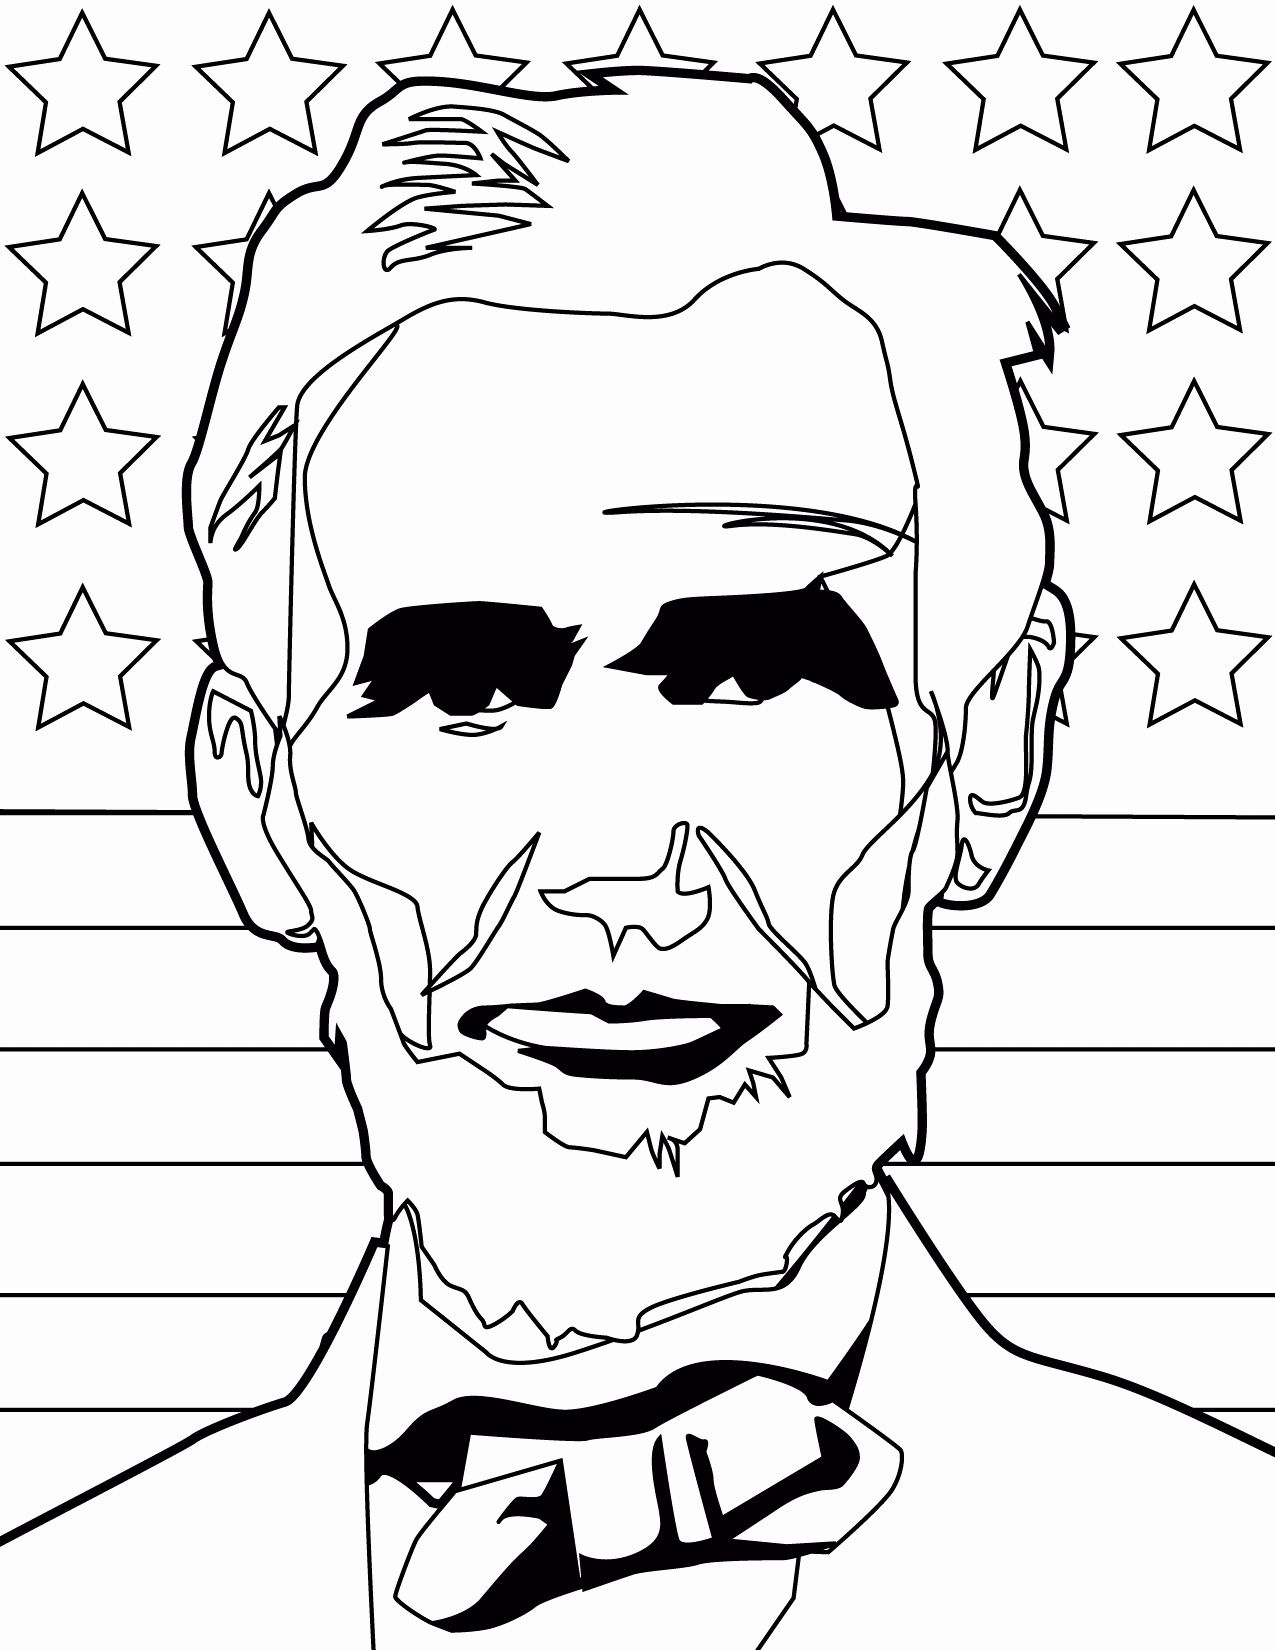 Abraham Lincoln Coloring Page Fresh Abraham Lincoln